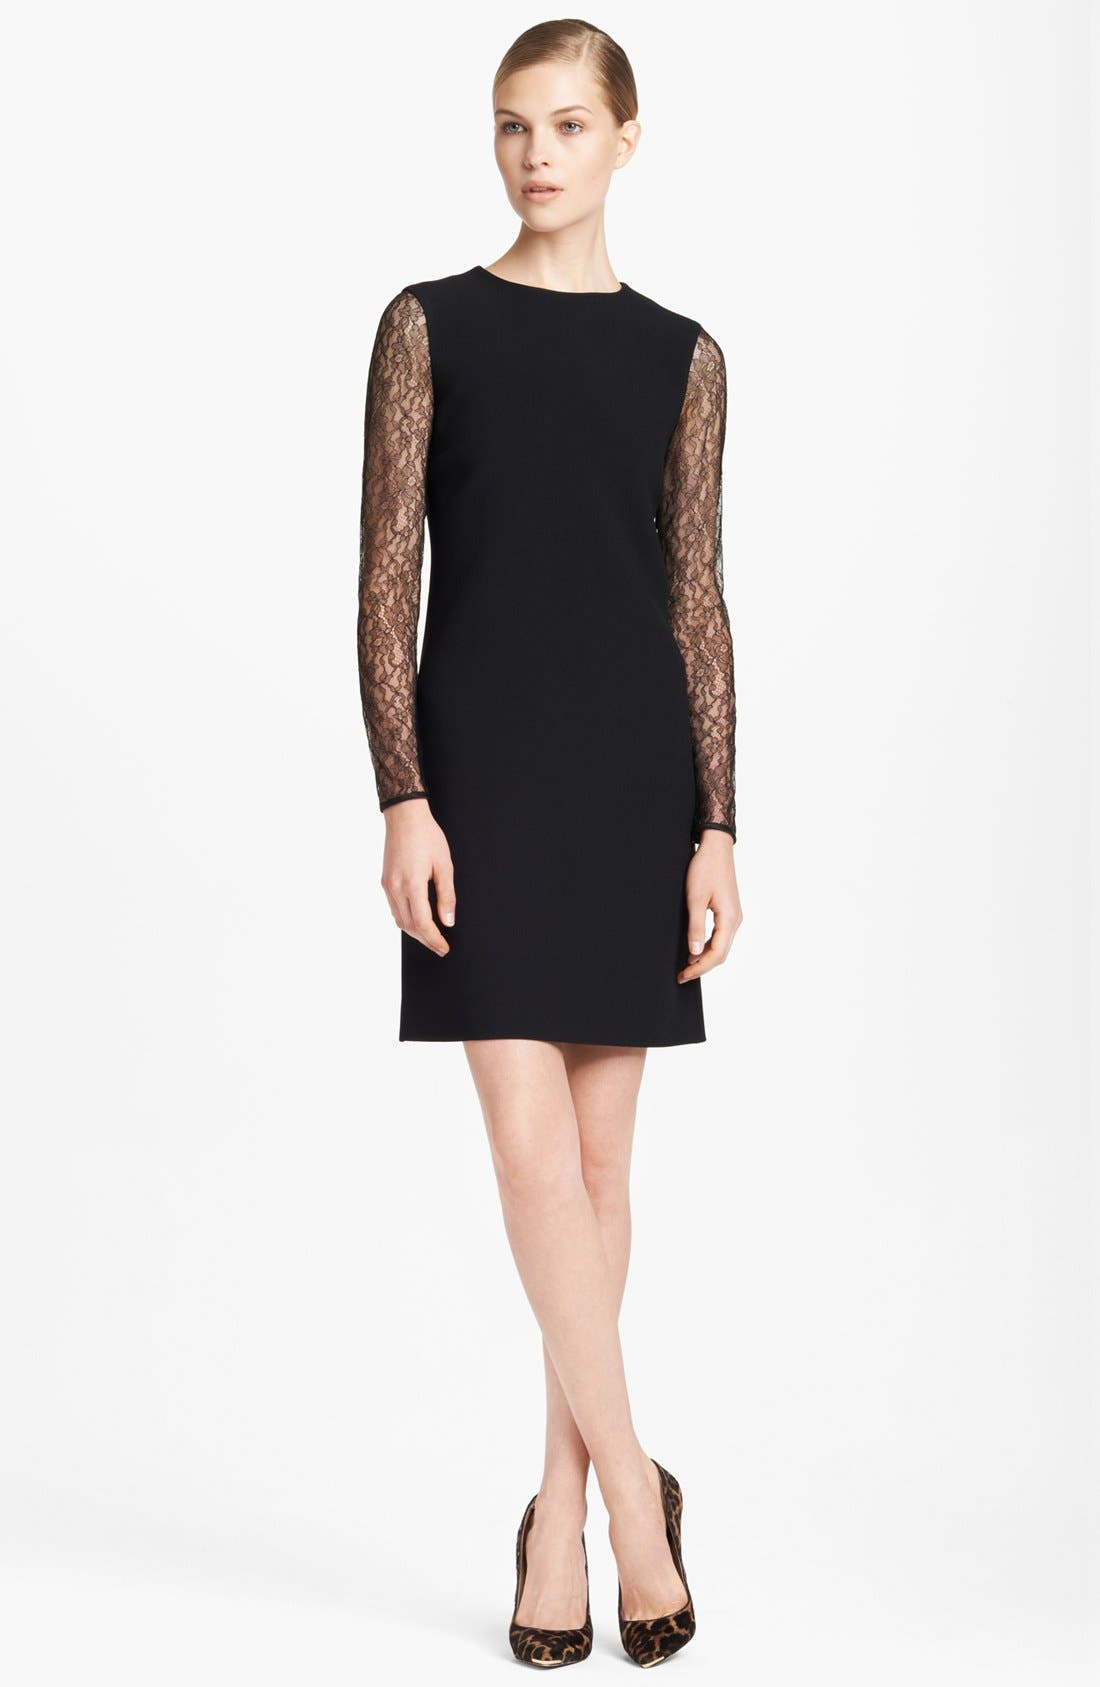 Alternate Image 1 Selected - Michael Kors Lace Sleeve Dress